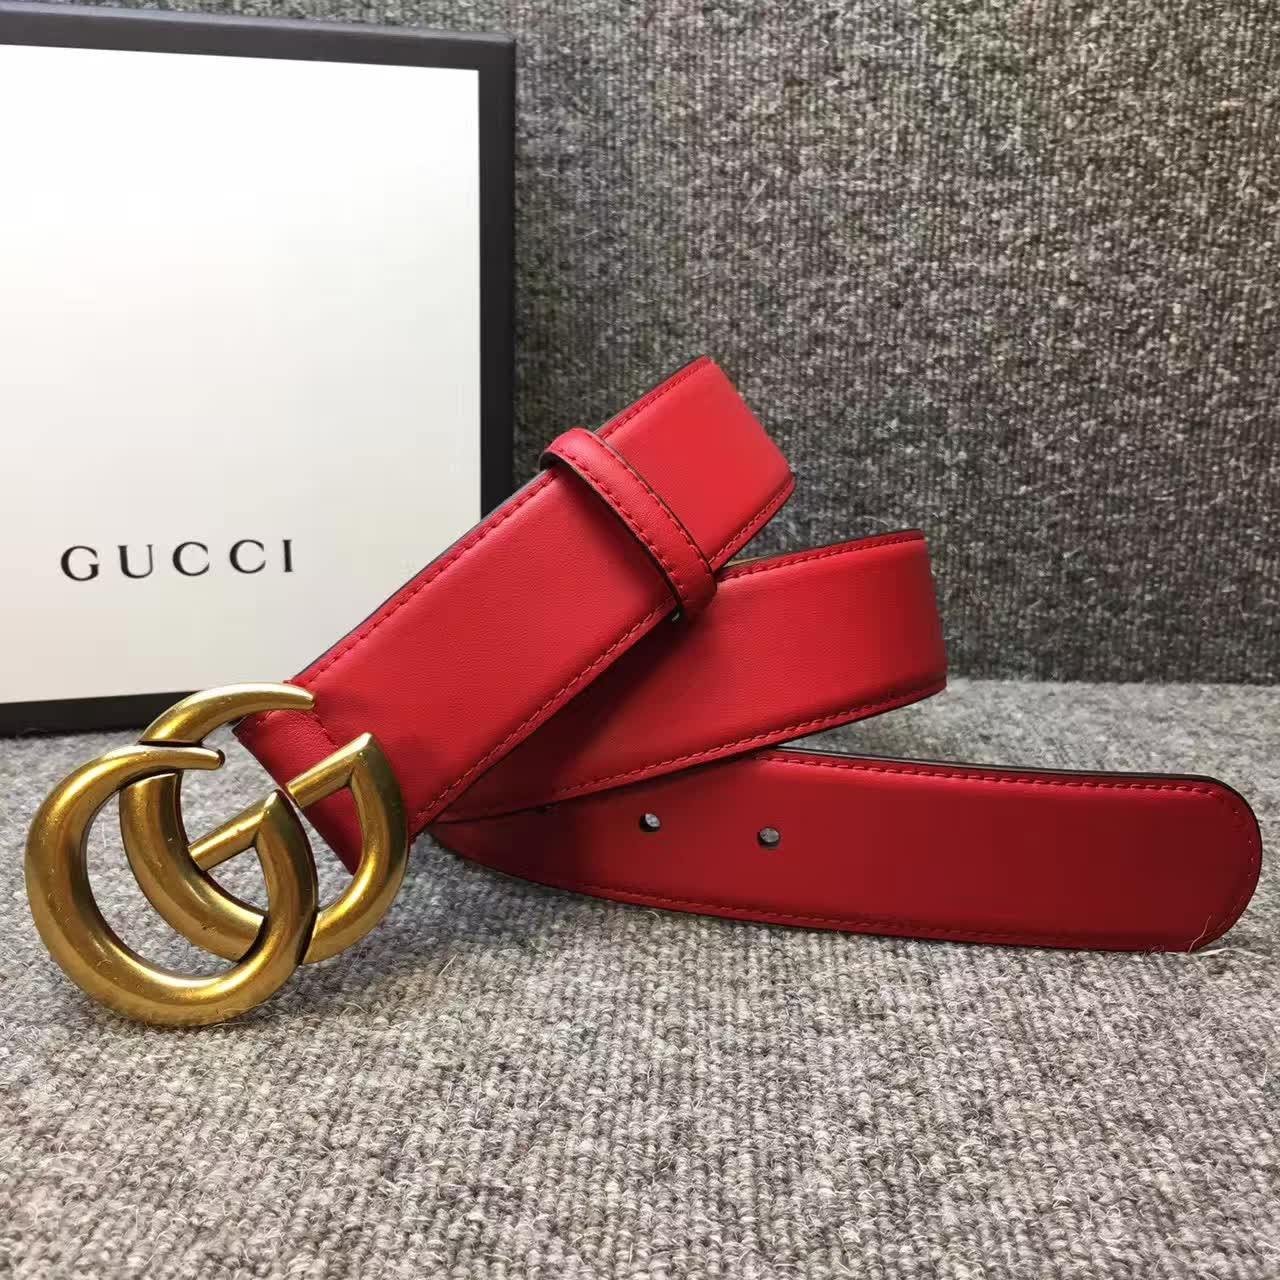 Cinto Gucci Fivela Double G - Loja Must Have